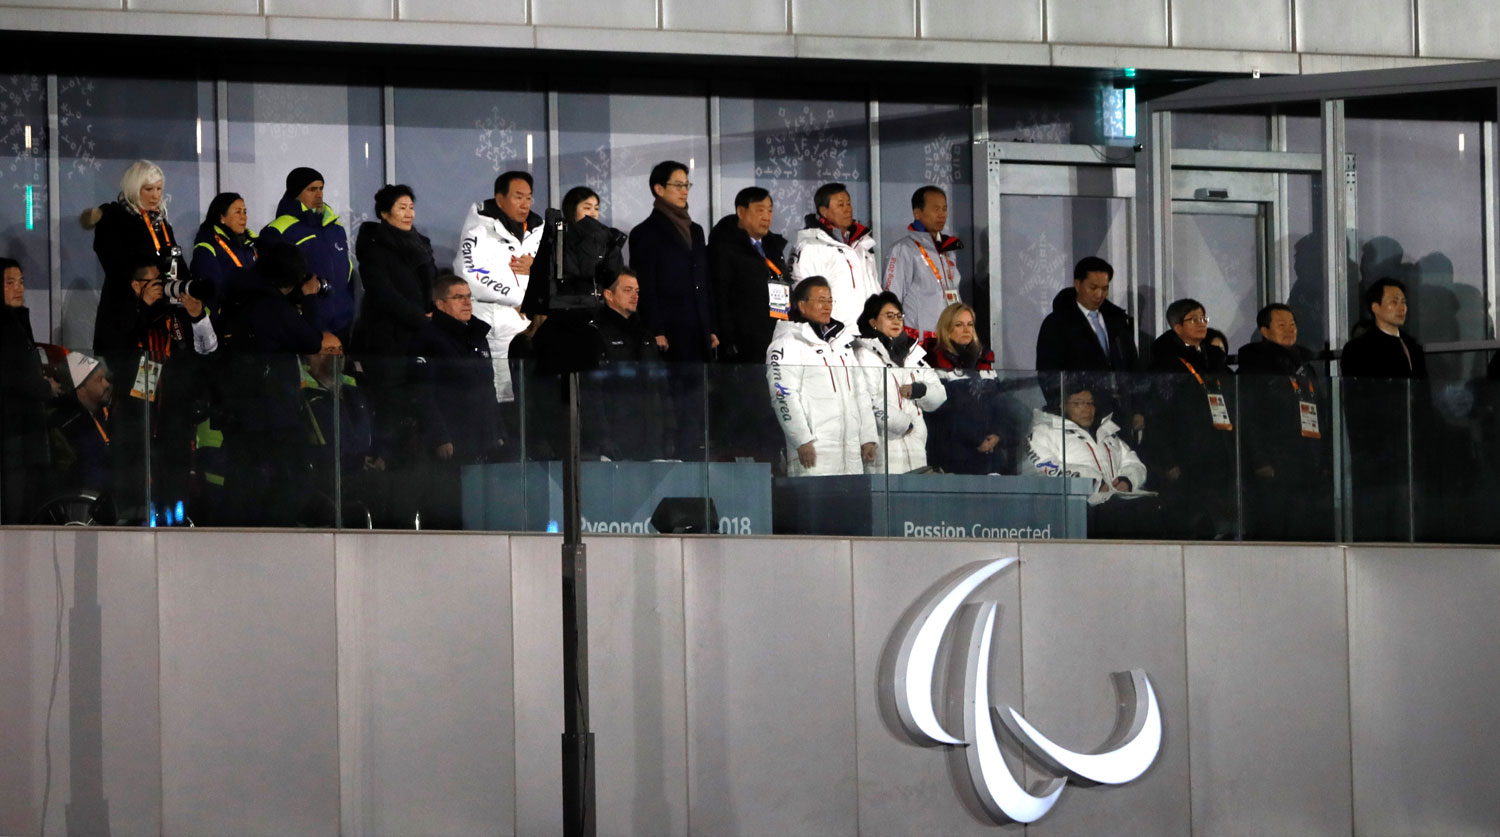 Pyeongchang 2018 Winter Paralympics - Opening ceremony - Pyeongchang Olympic Stadium - Pyeongchang, South Korea - March 9, 2018 - South Korean President Moon Jae-in and IOC President Thomas Bach attend the opening ceremony. REUTERS/Carl Recine - RC1B89B0CA20